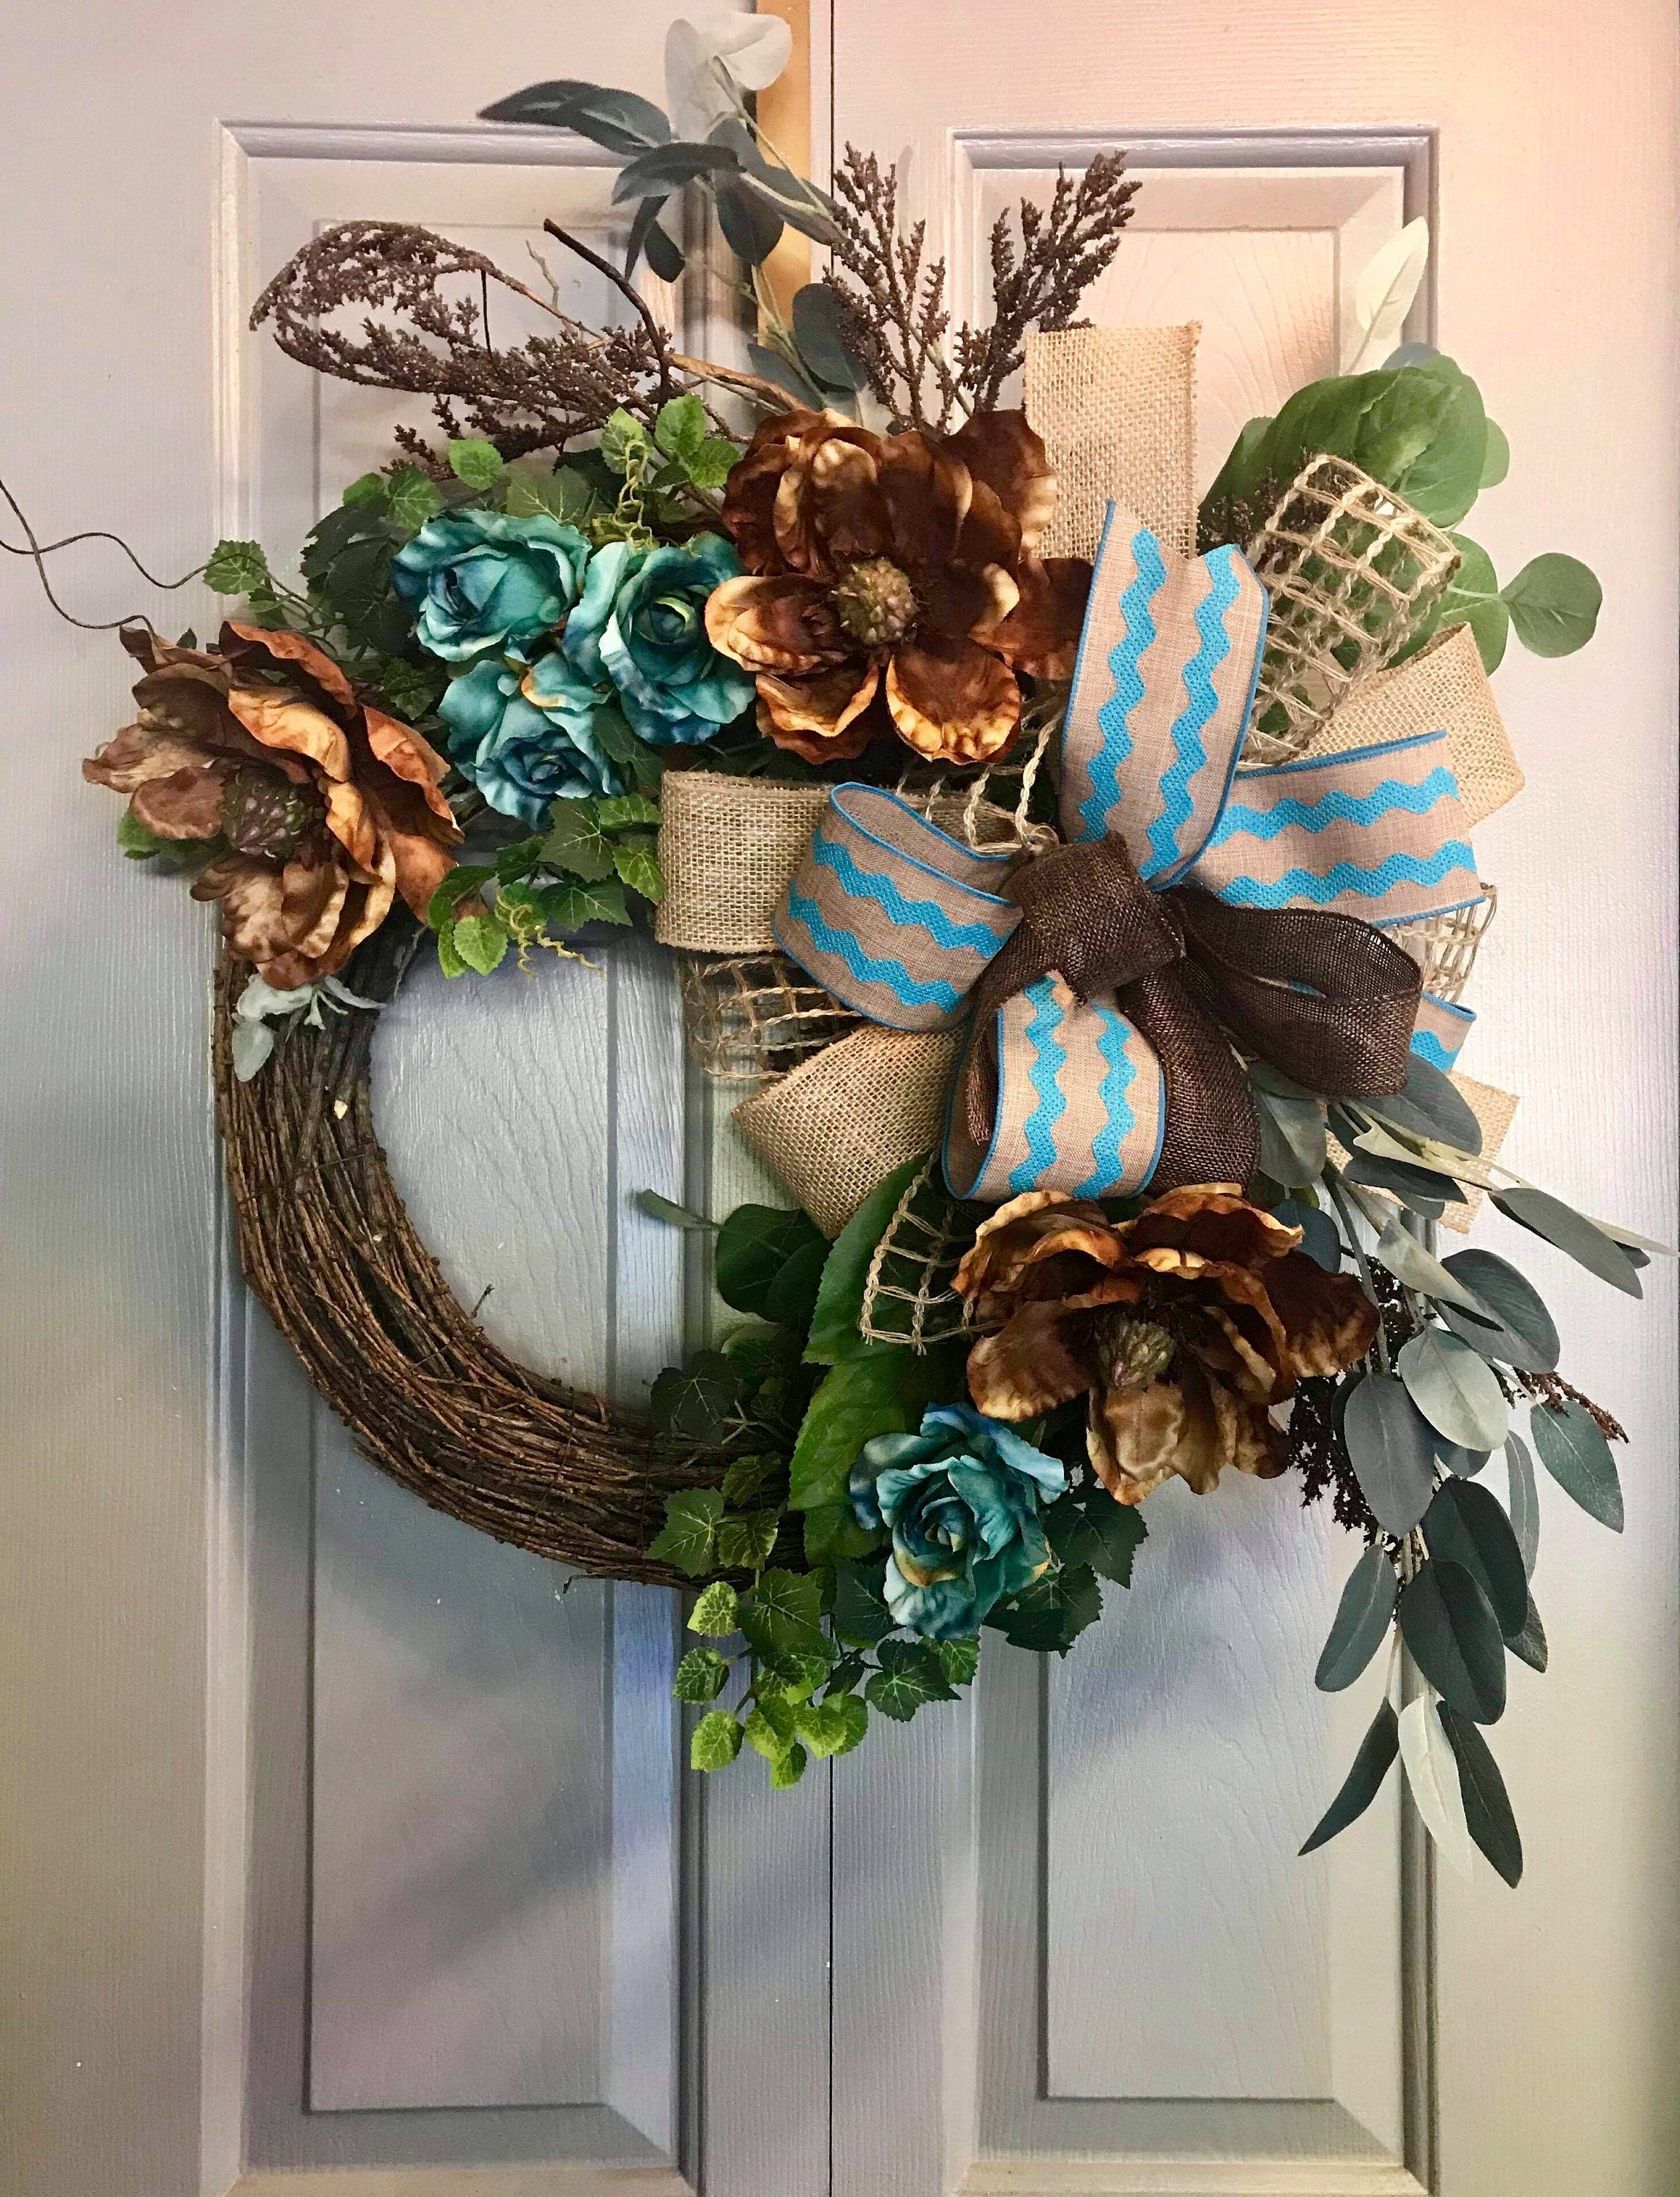 Rustic Grapevine Wreath Front Door Decor Everyday Wreath Everyday Wreath Grapevine Wreath Rustic Wreath